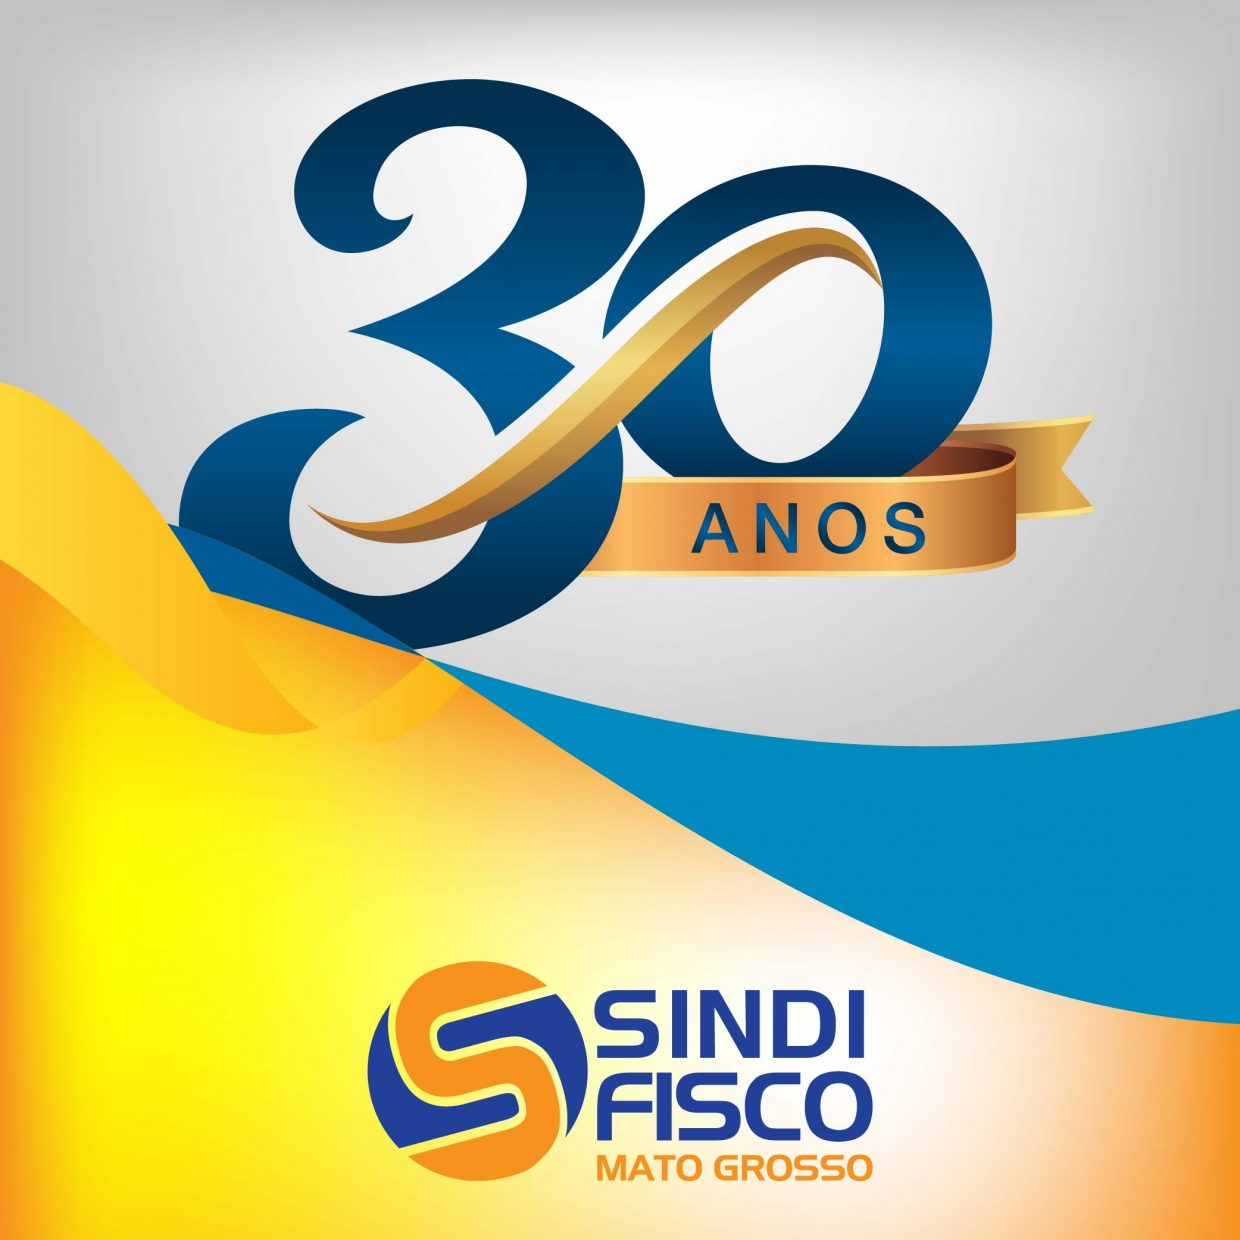 Post - 30 anos - Sindifisco-02